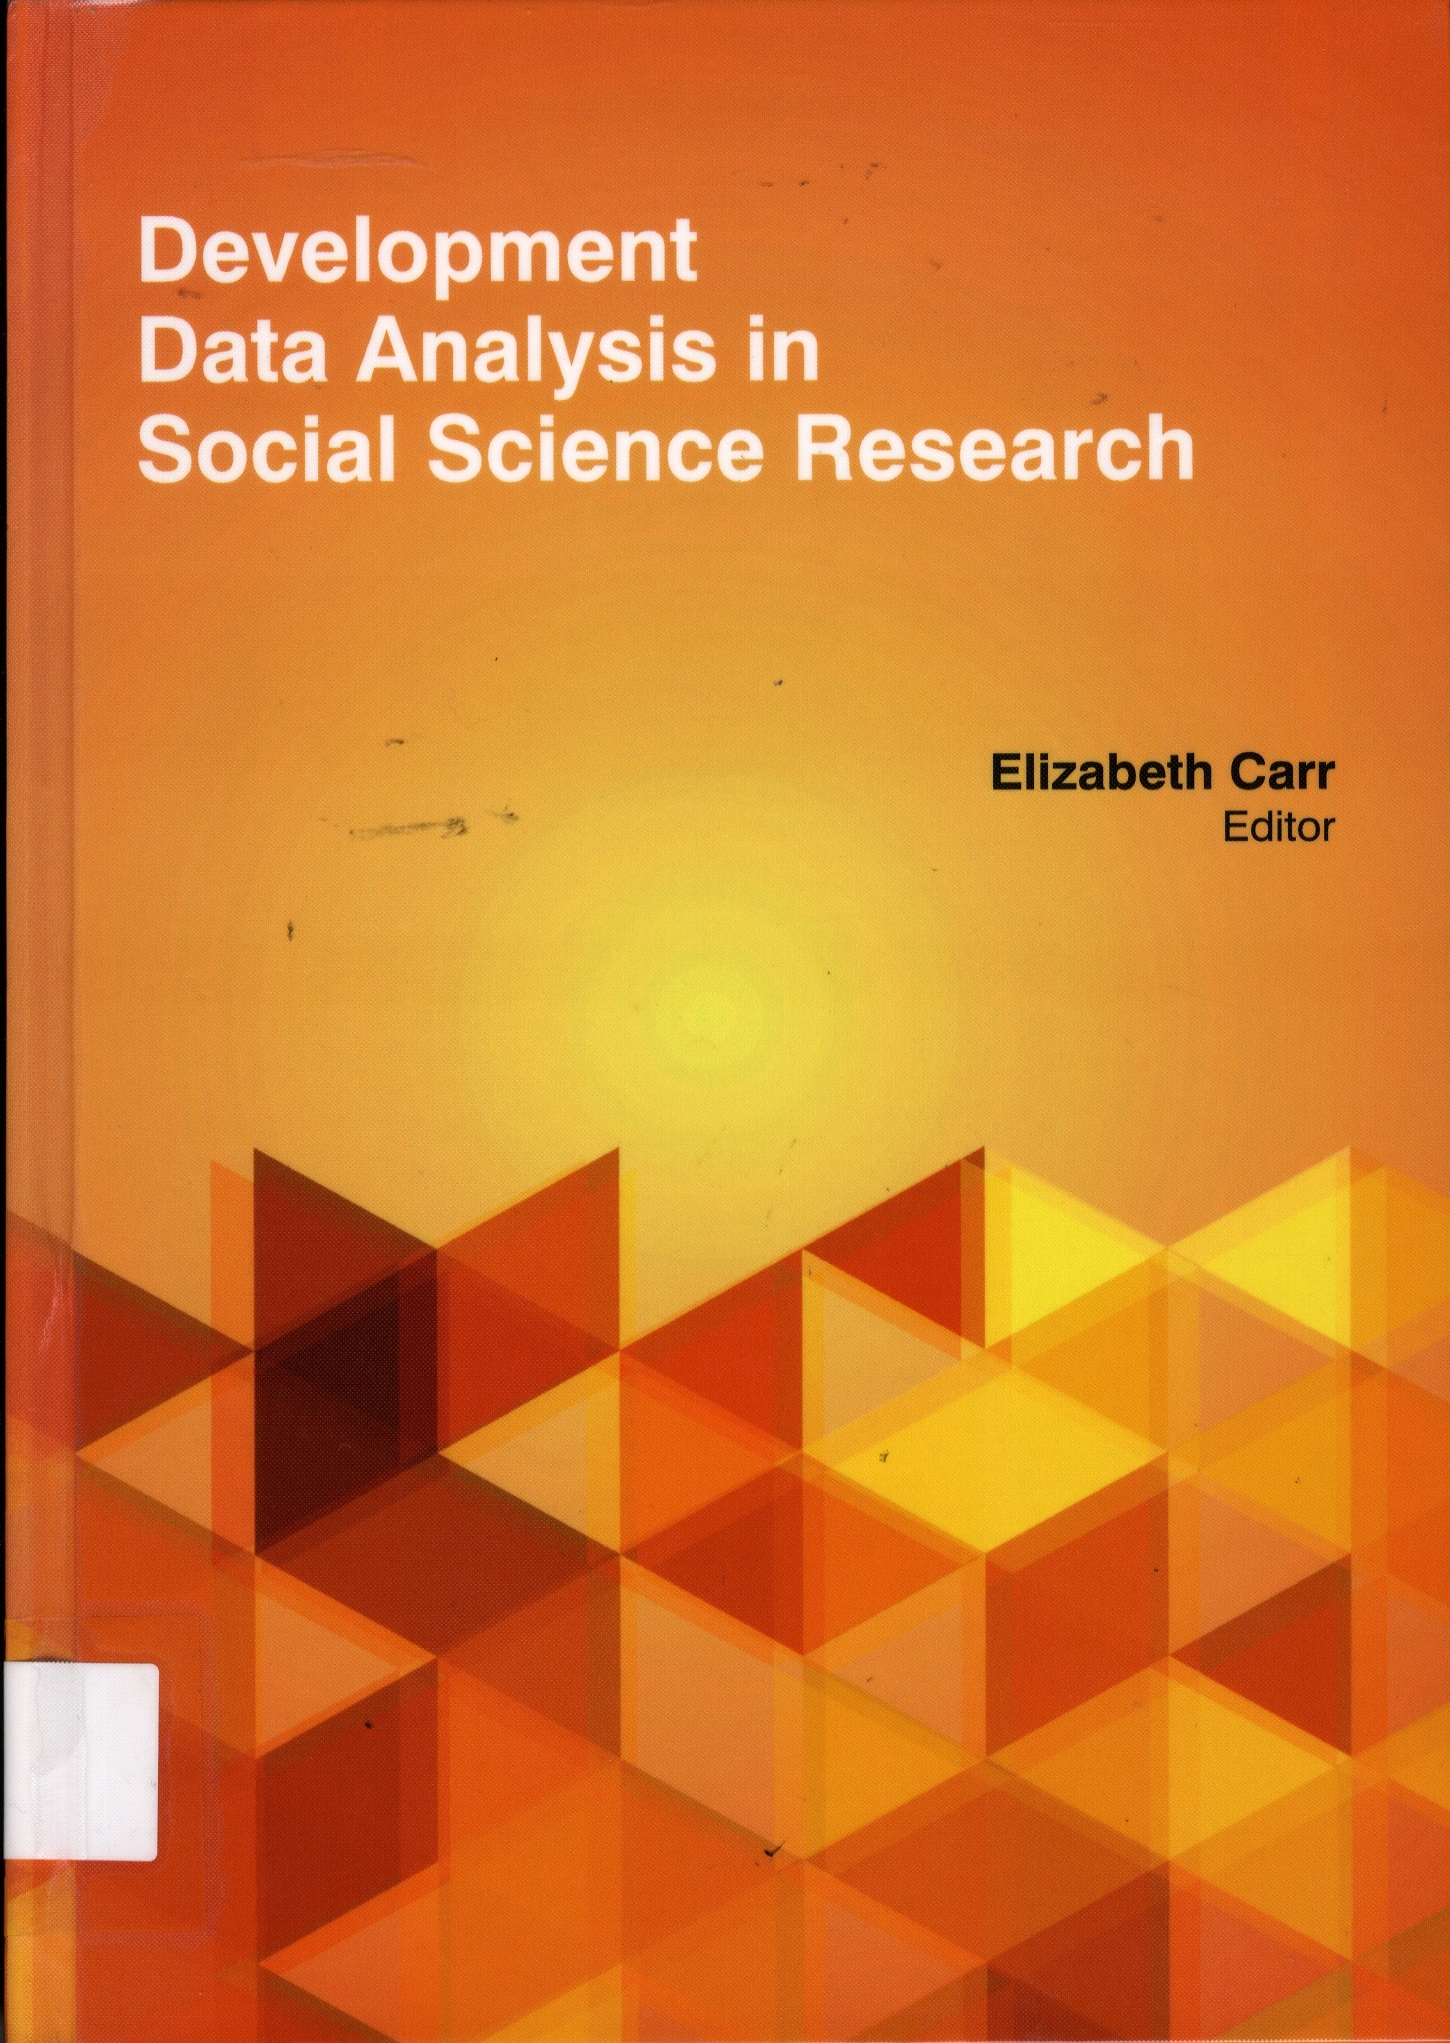 DEVELOPMENT DATA ANALYSIS IN SOCIAL SCIENCE RESEARCH